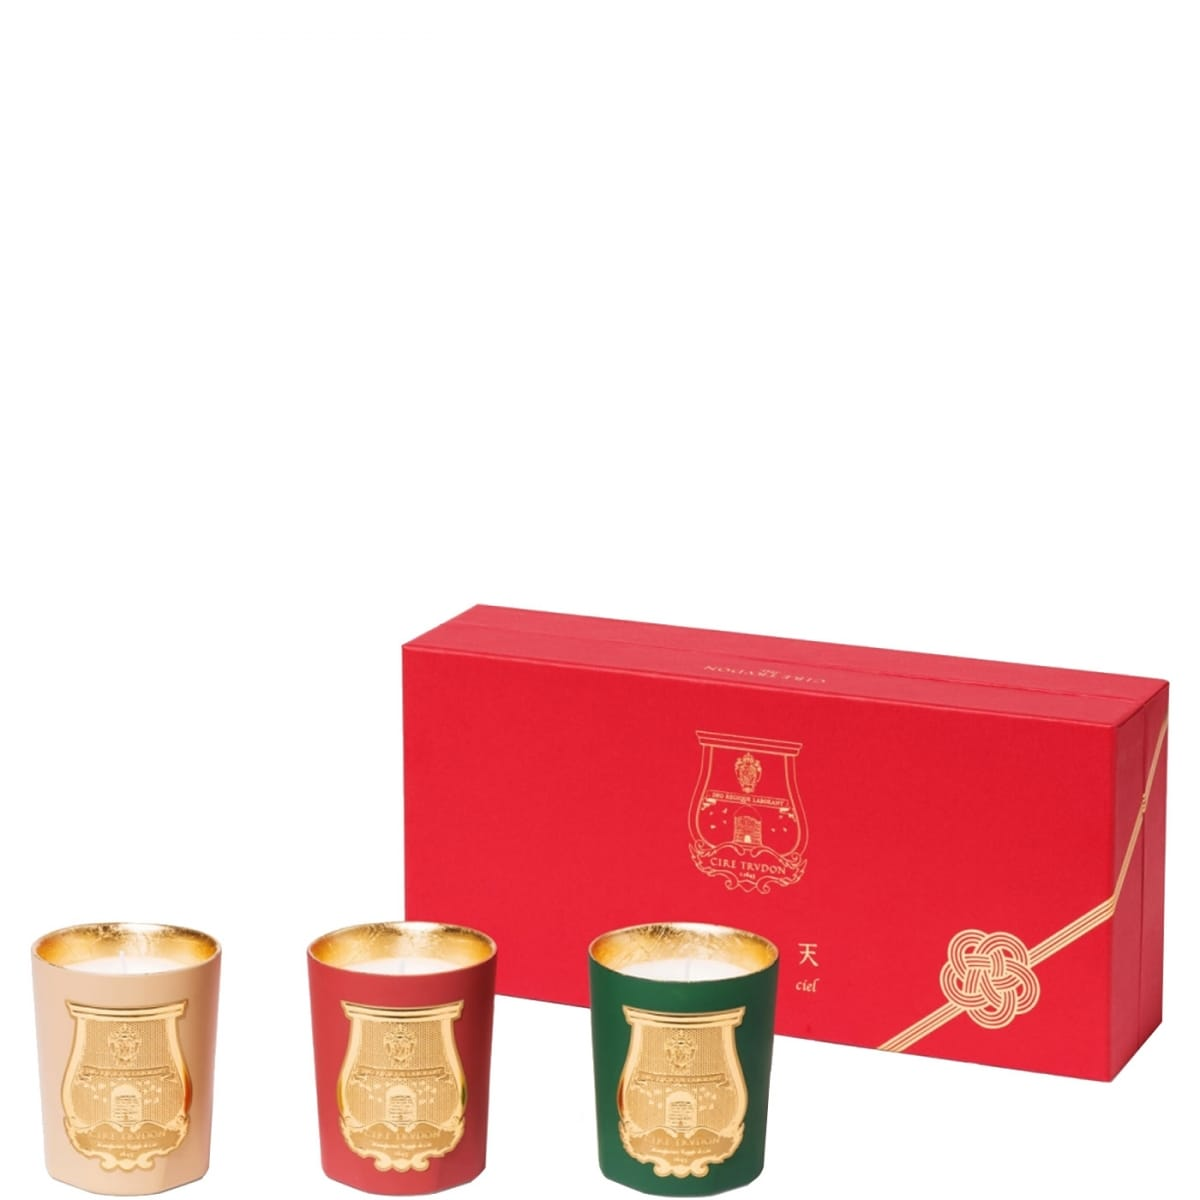 odeurs d 39 hiver de cire trudon coffret bougies parfum es incenza. Black Bedroom Furniture Sets. Home Design Ideas